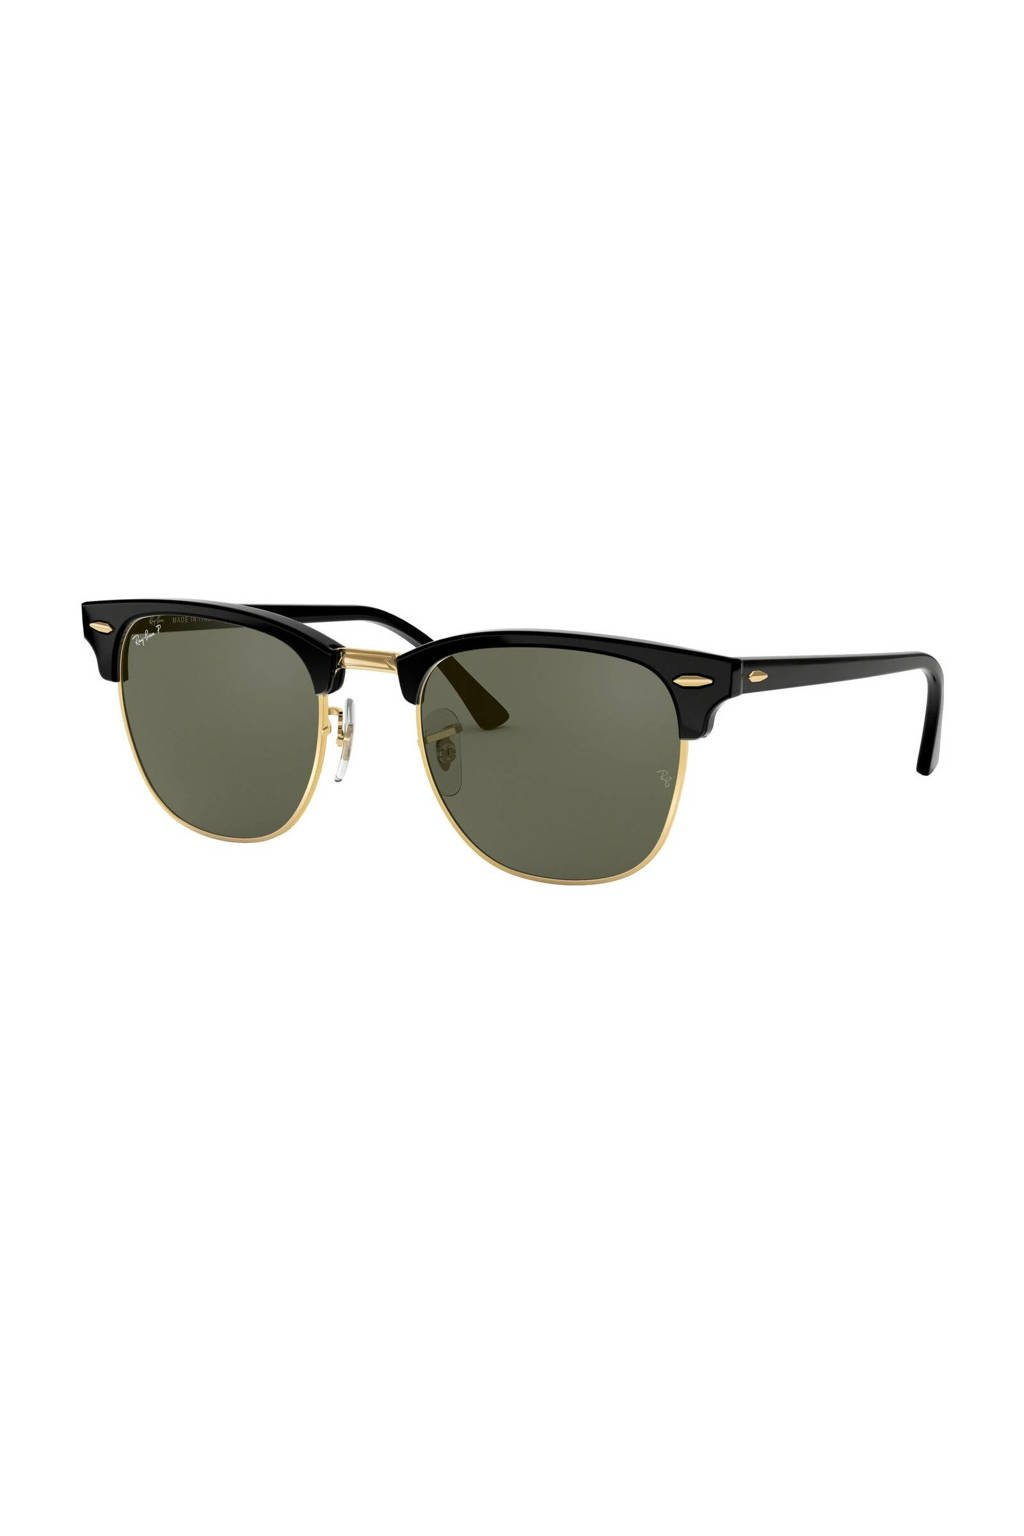 Ray-Ban zonnebril 0RB3016, Groen